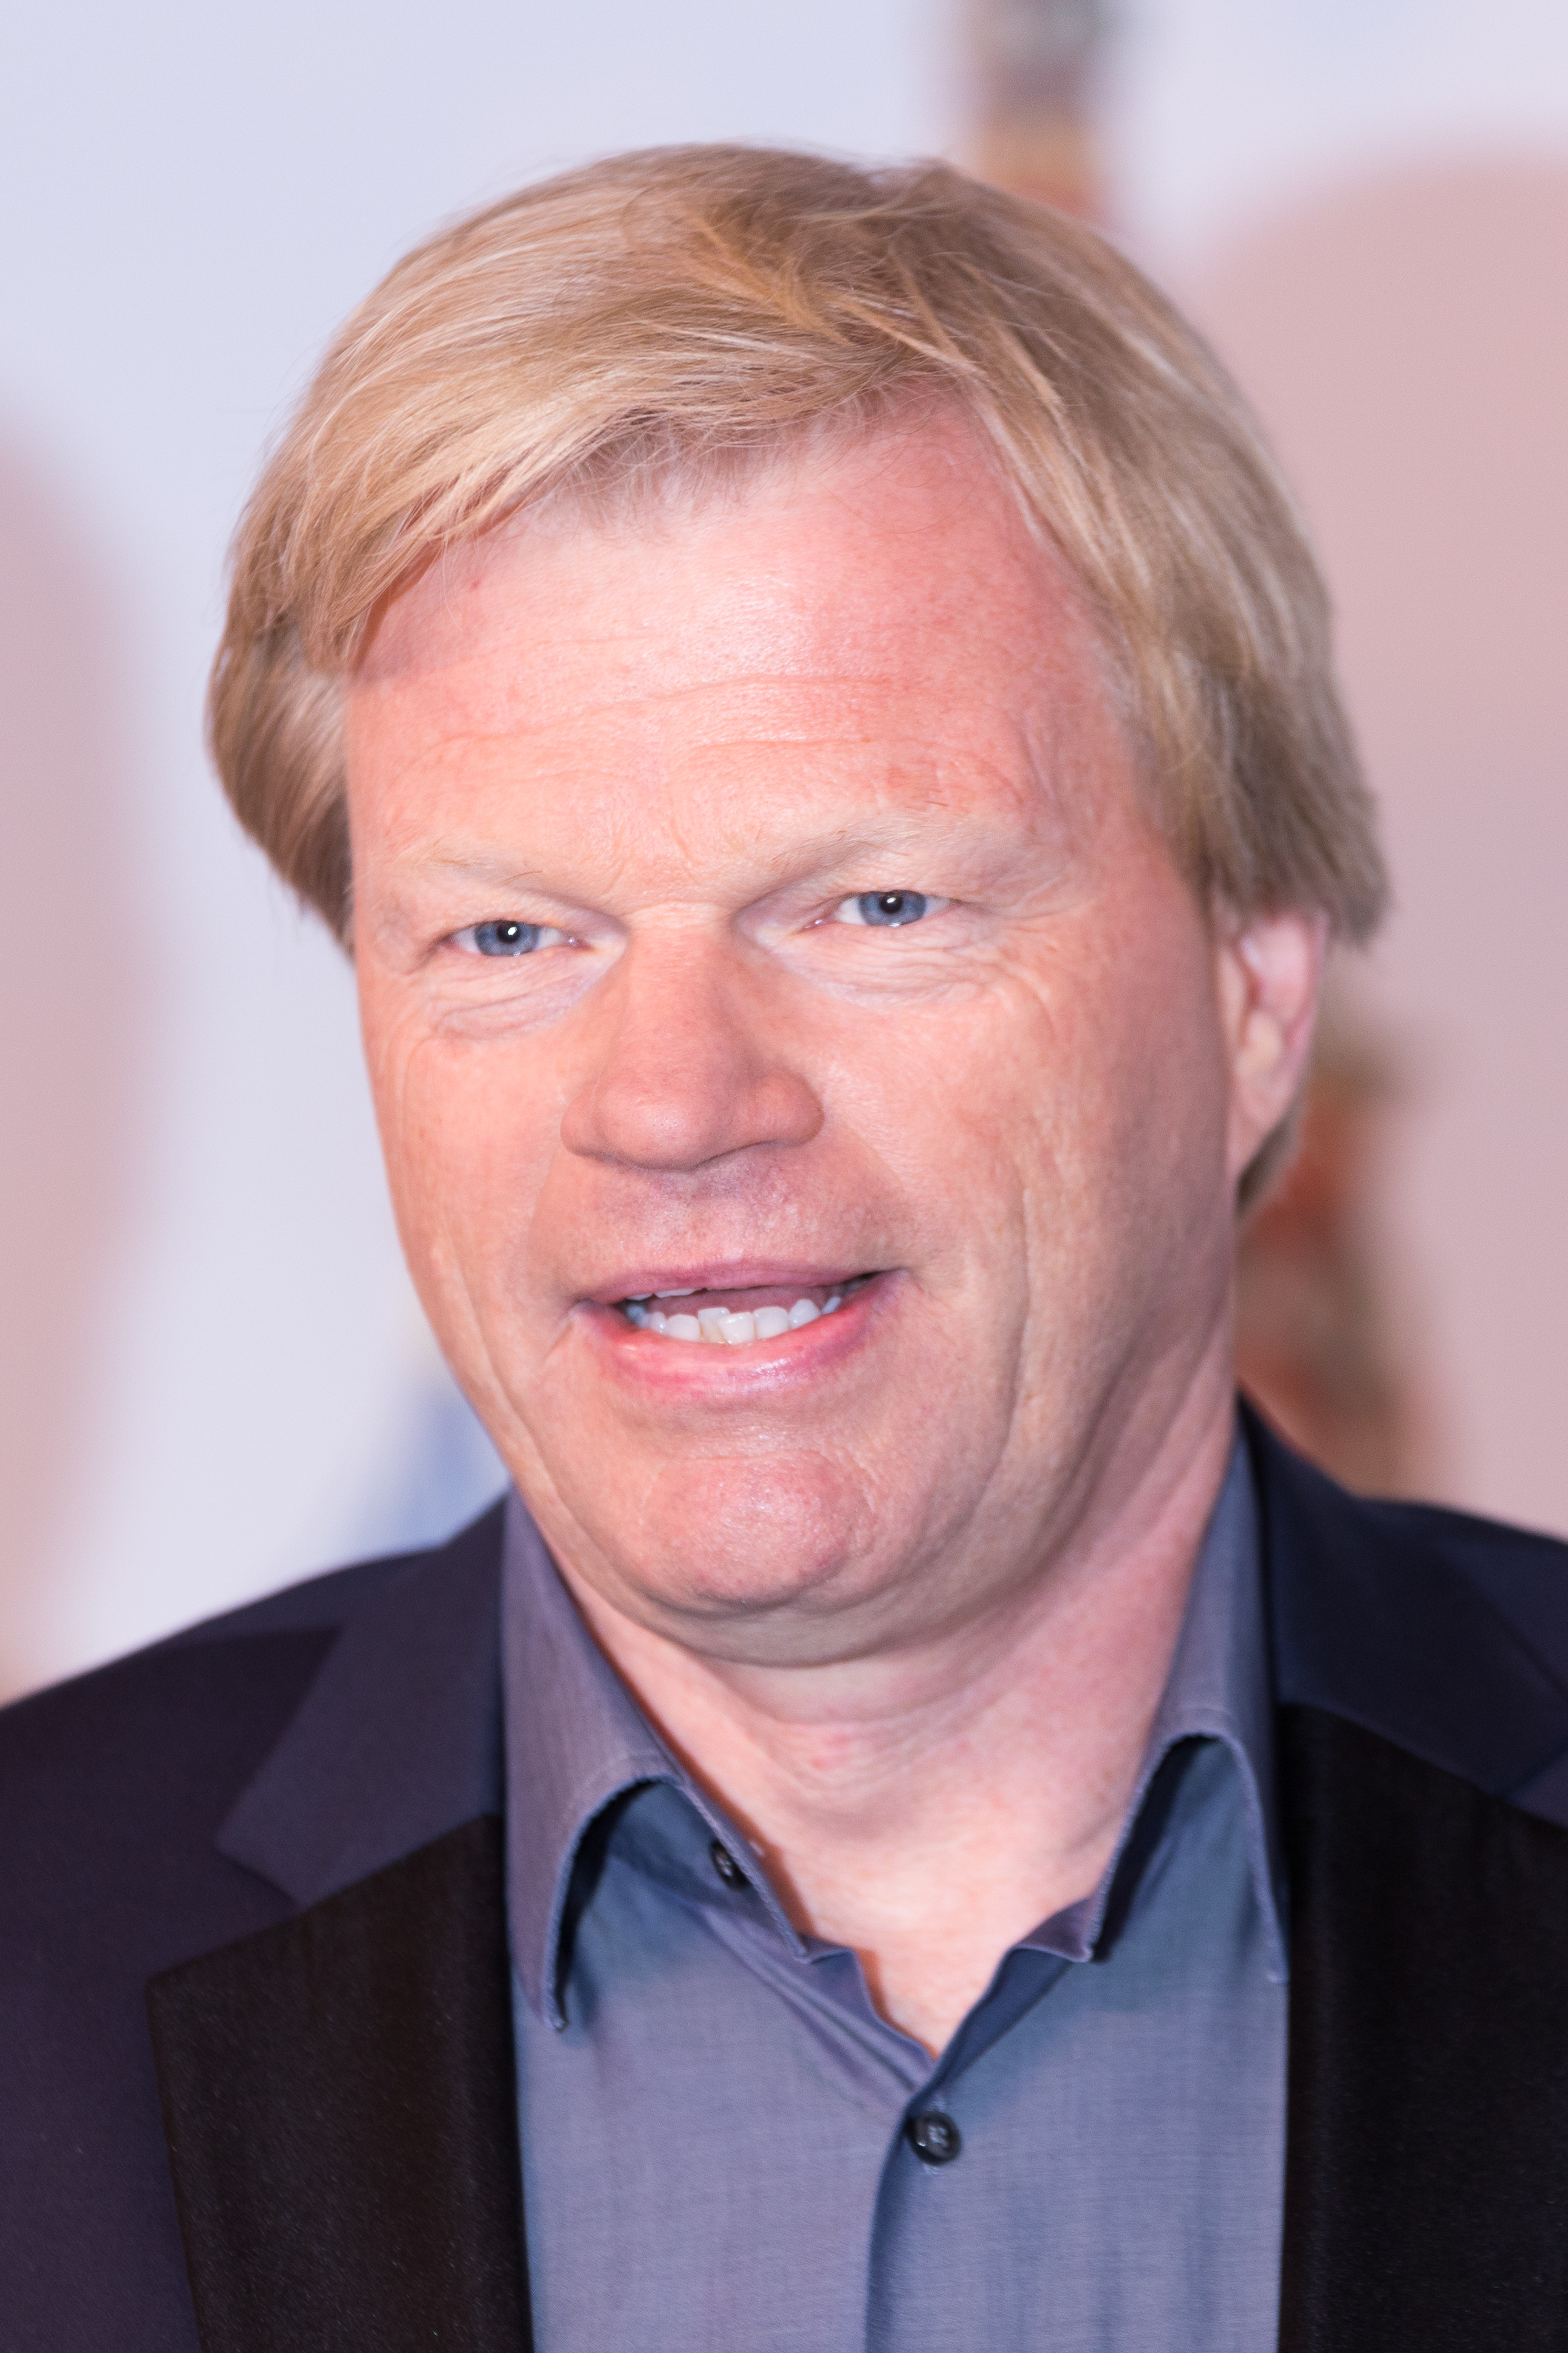 The 48-year old son of father Rolf and mother Monika Oliver Kahn in 2018 photo. Oliver Kahn earned a  million dollar salary - leaving the net worth at 100 million in 2018